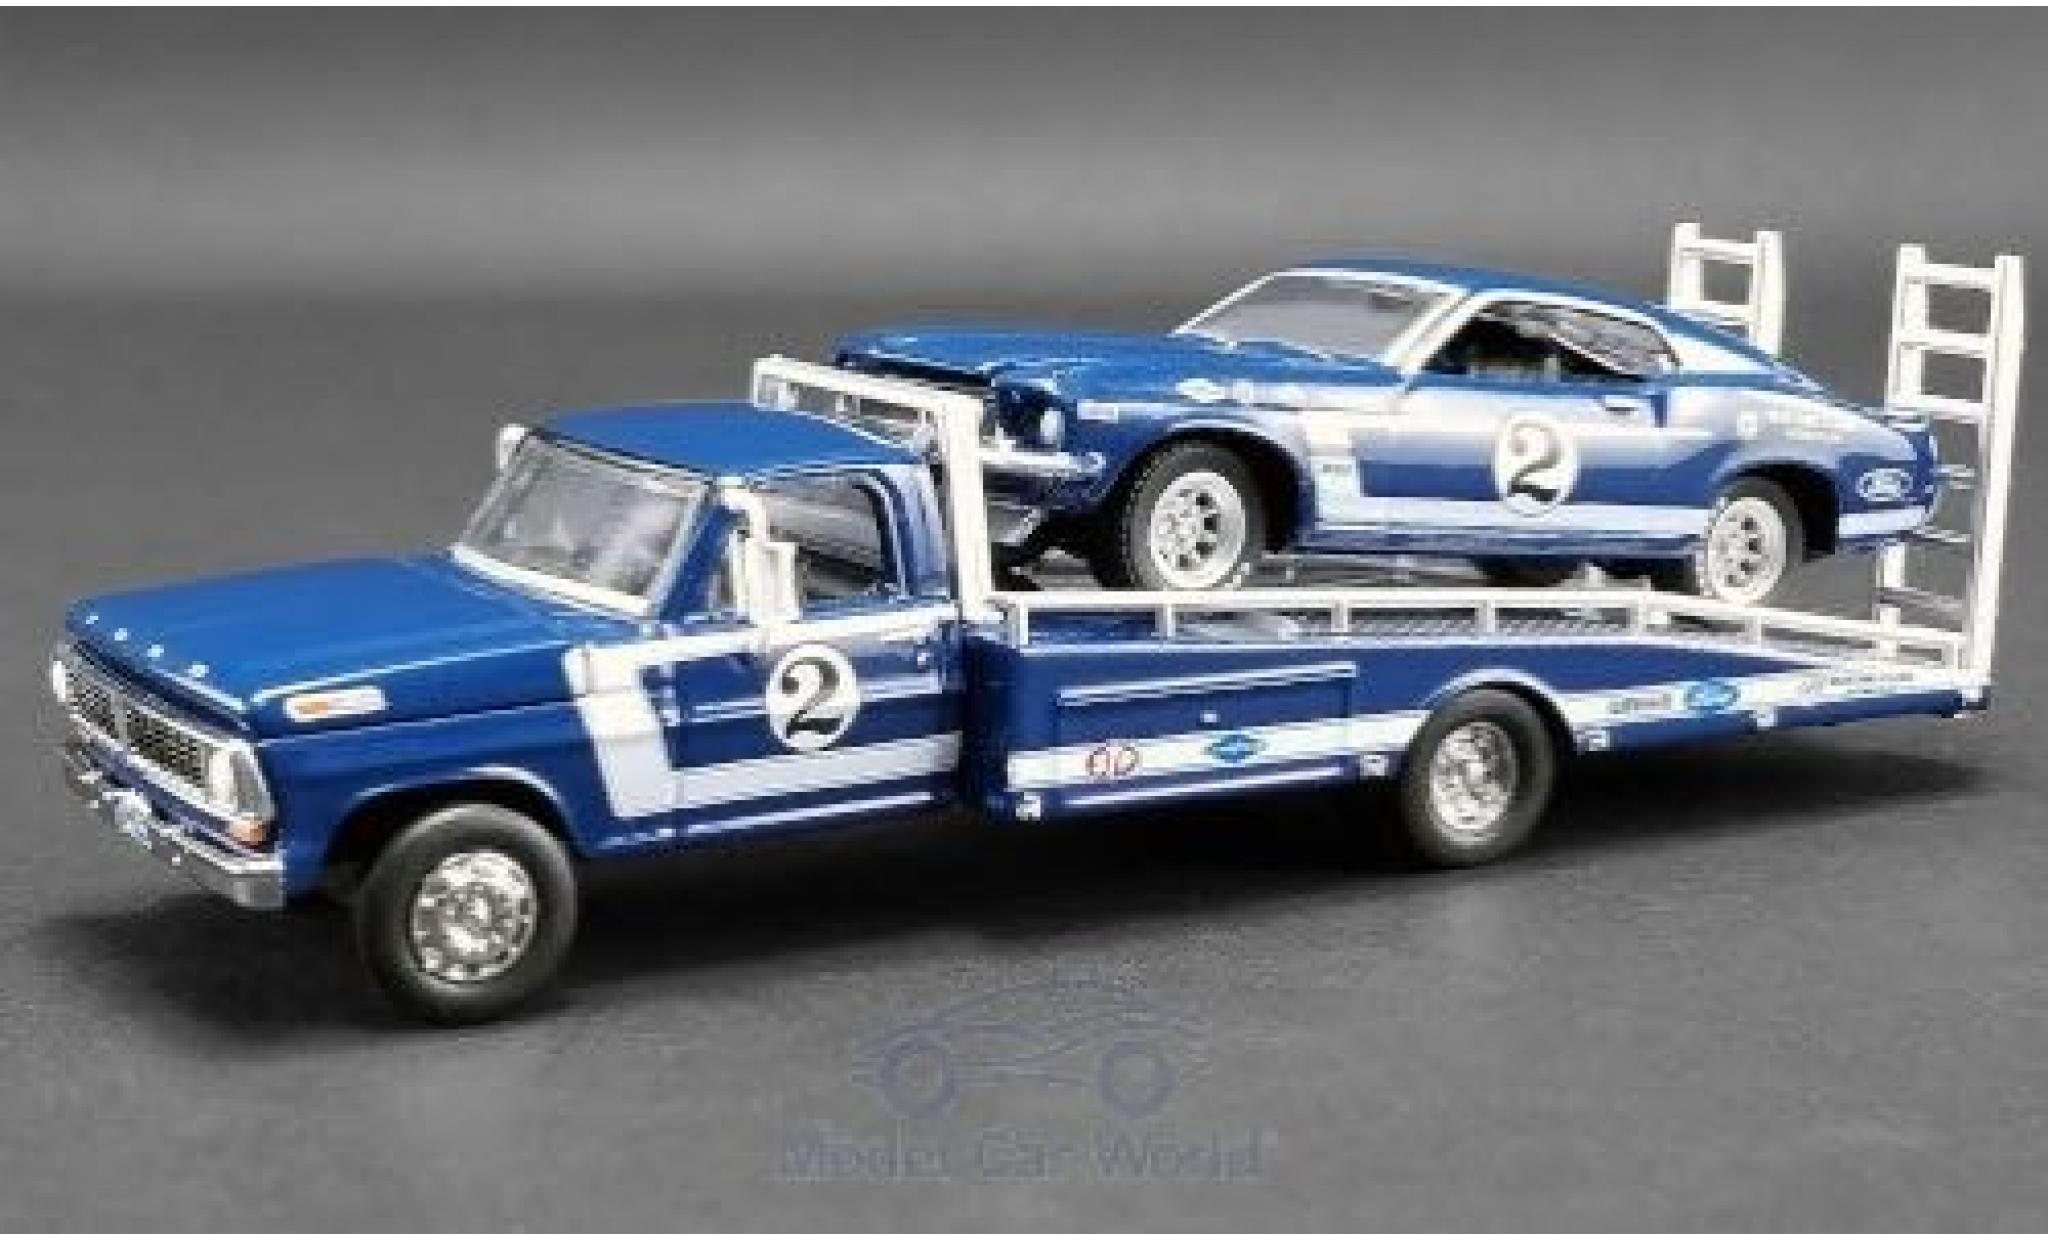 Ford Mustang 1/64 ACME Boss 302 Trans Am No.2 Clubs Racing Team Trans-Am 1969 mit F-350 Ramp Truck D.Gurney